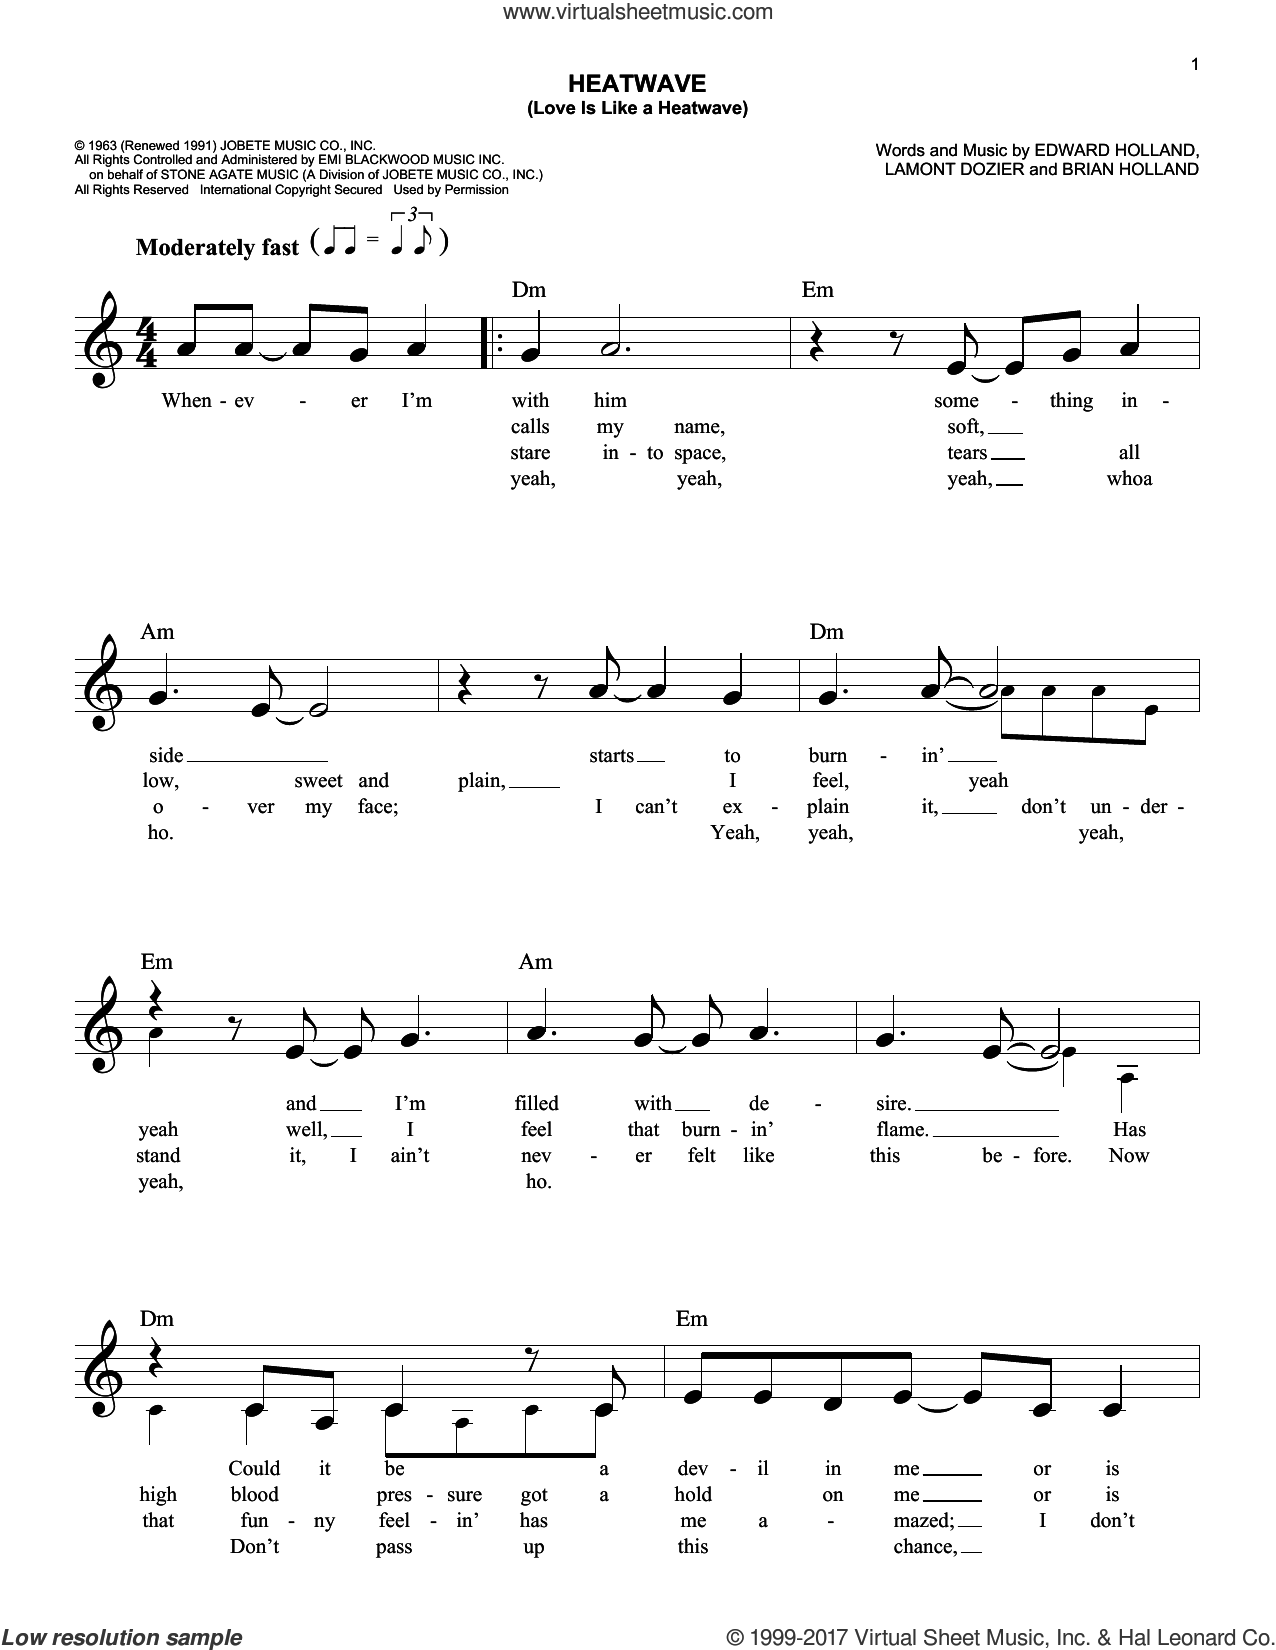 Heatwave (Love Is Like A Heatwave) sheet music for voice and other instruments (fake book) by Martha & The Vandellas, Linda Ronstadt, Brian Holland, Eddie Holland and Lamont Dozier, intermediate skill level